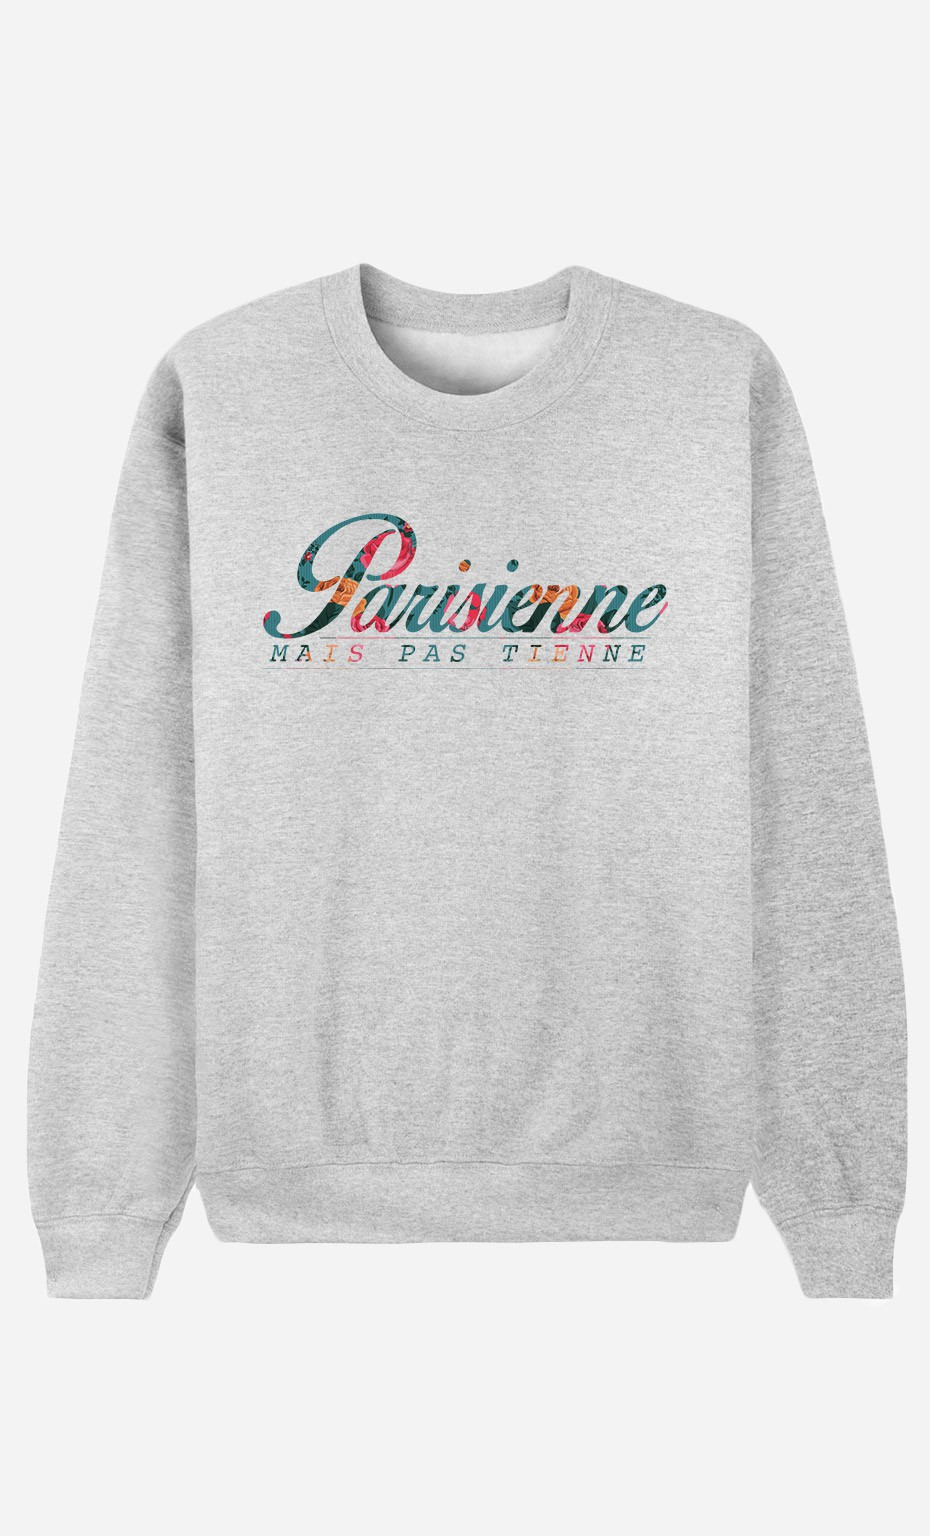 Sweat Parisienne Mais Pas Tienne